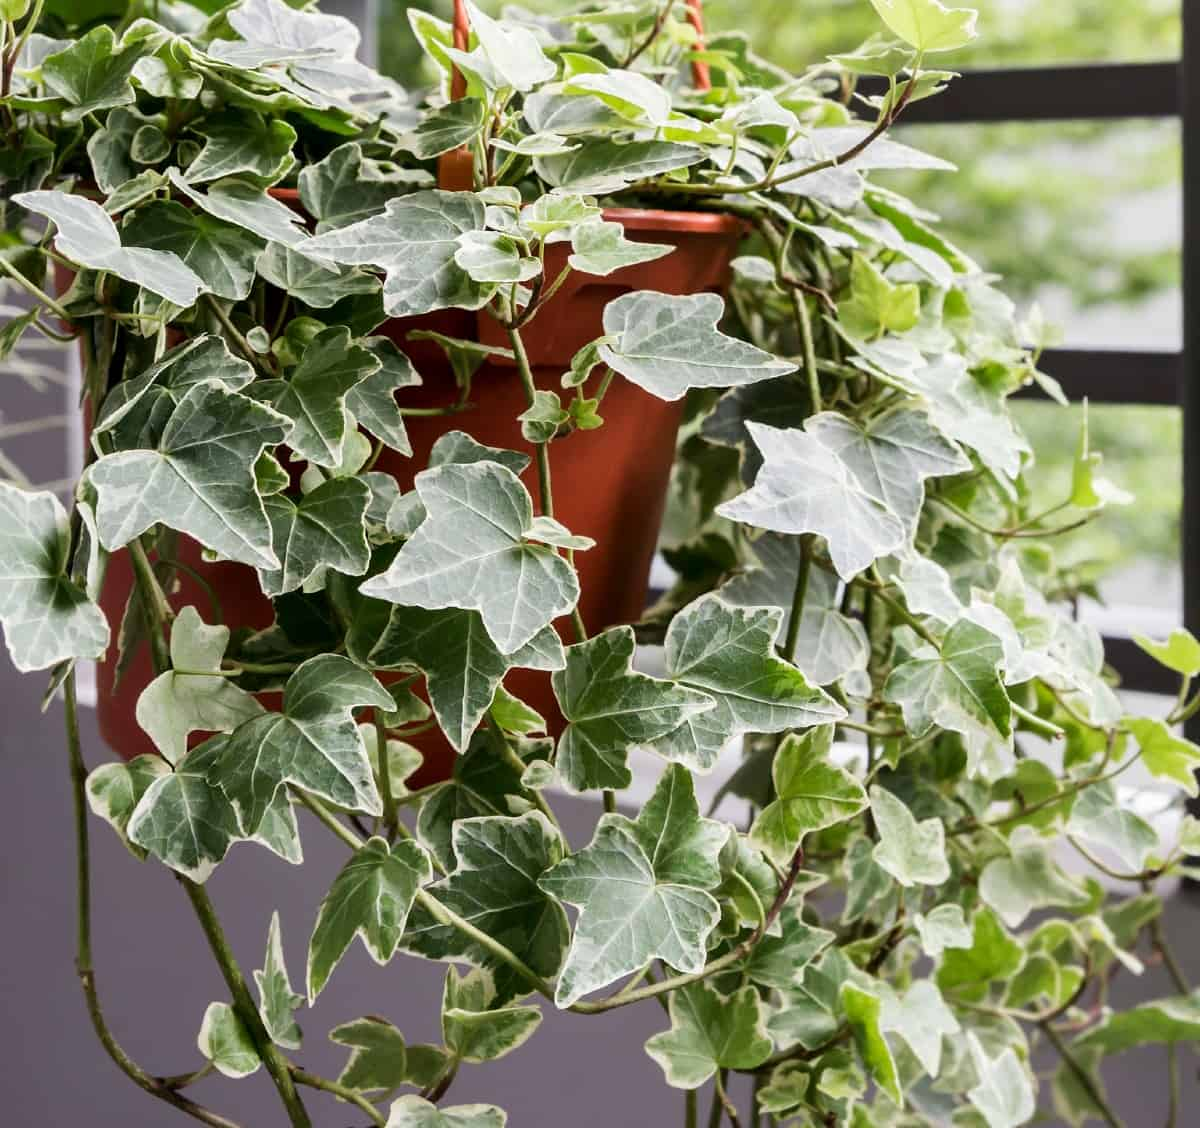 English ivy is a plant with interesting foliage